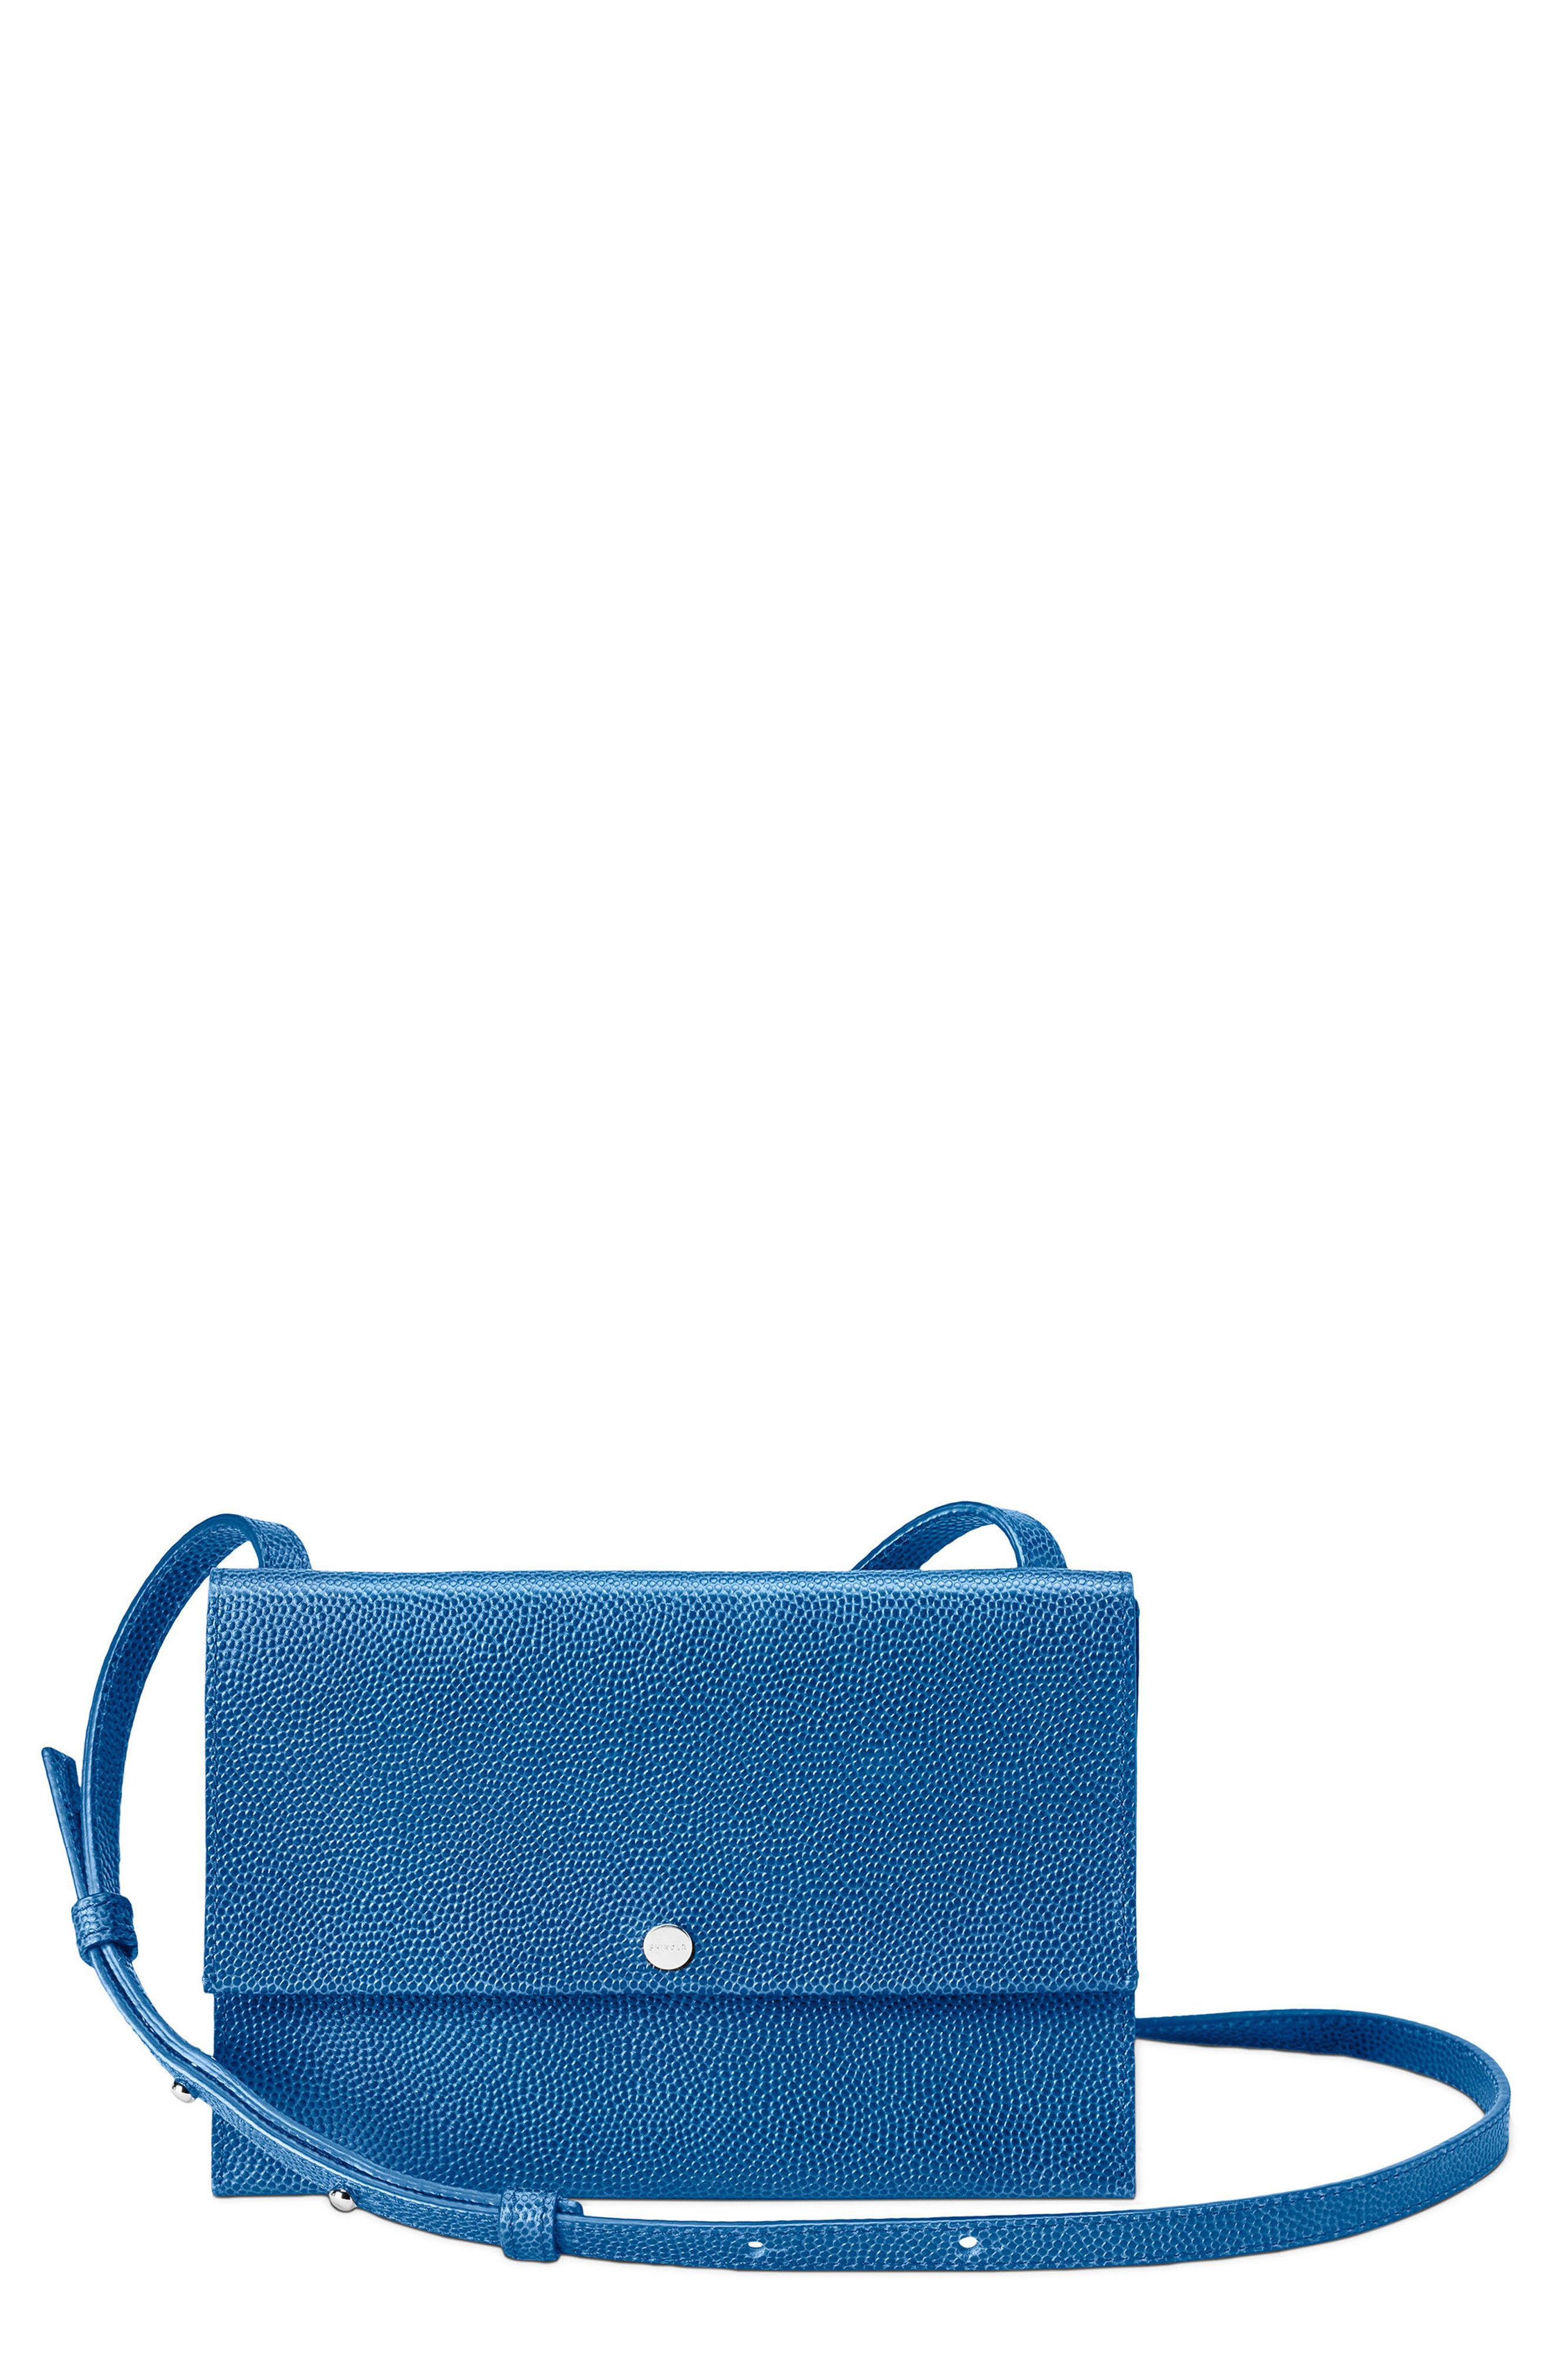 Alternate Image 1 Selected - Shinola Leather Crossbody Bag